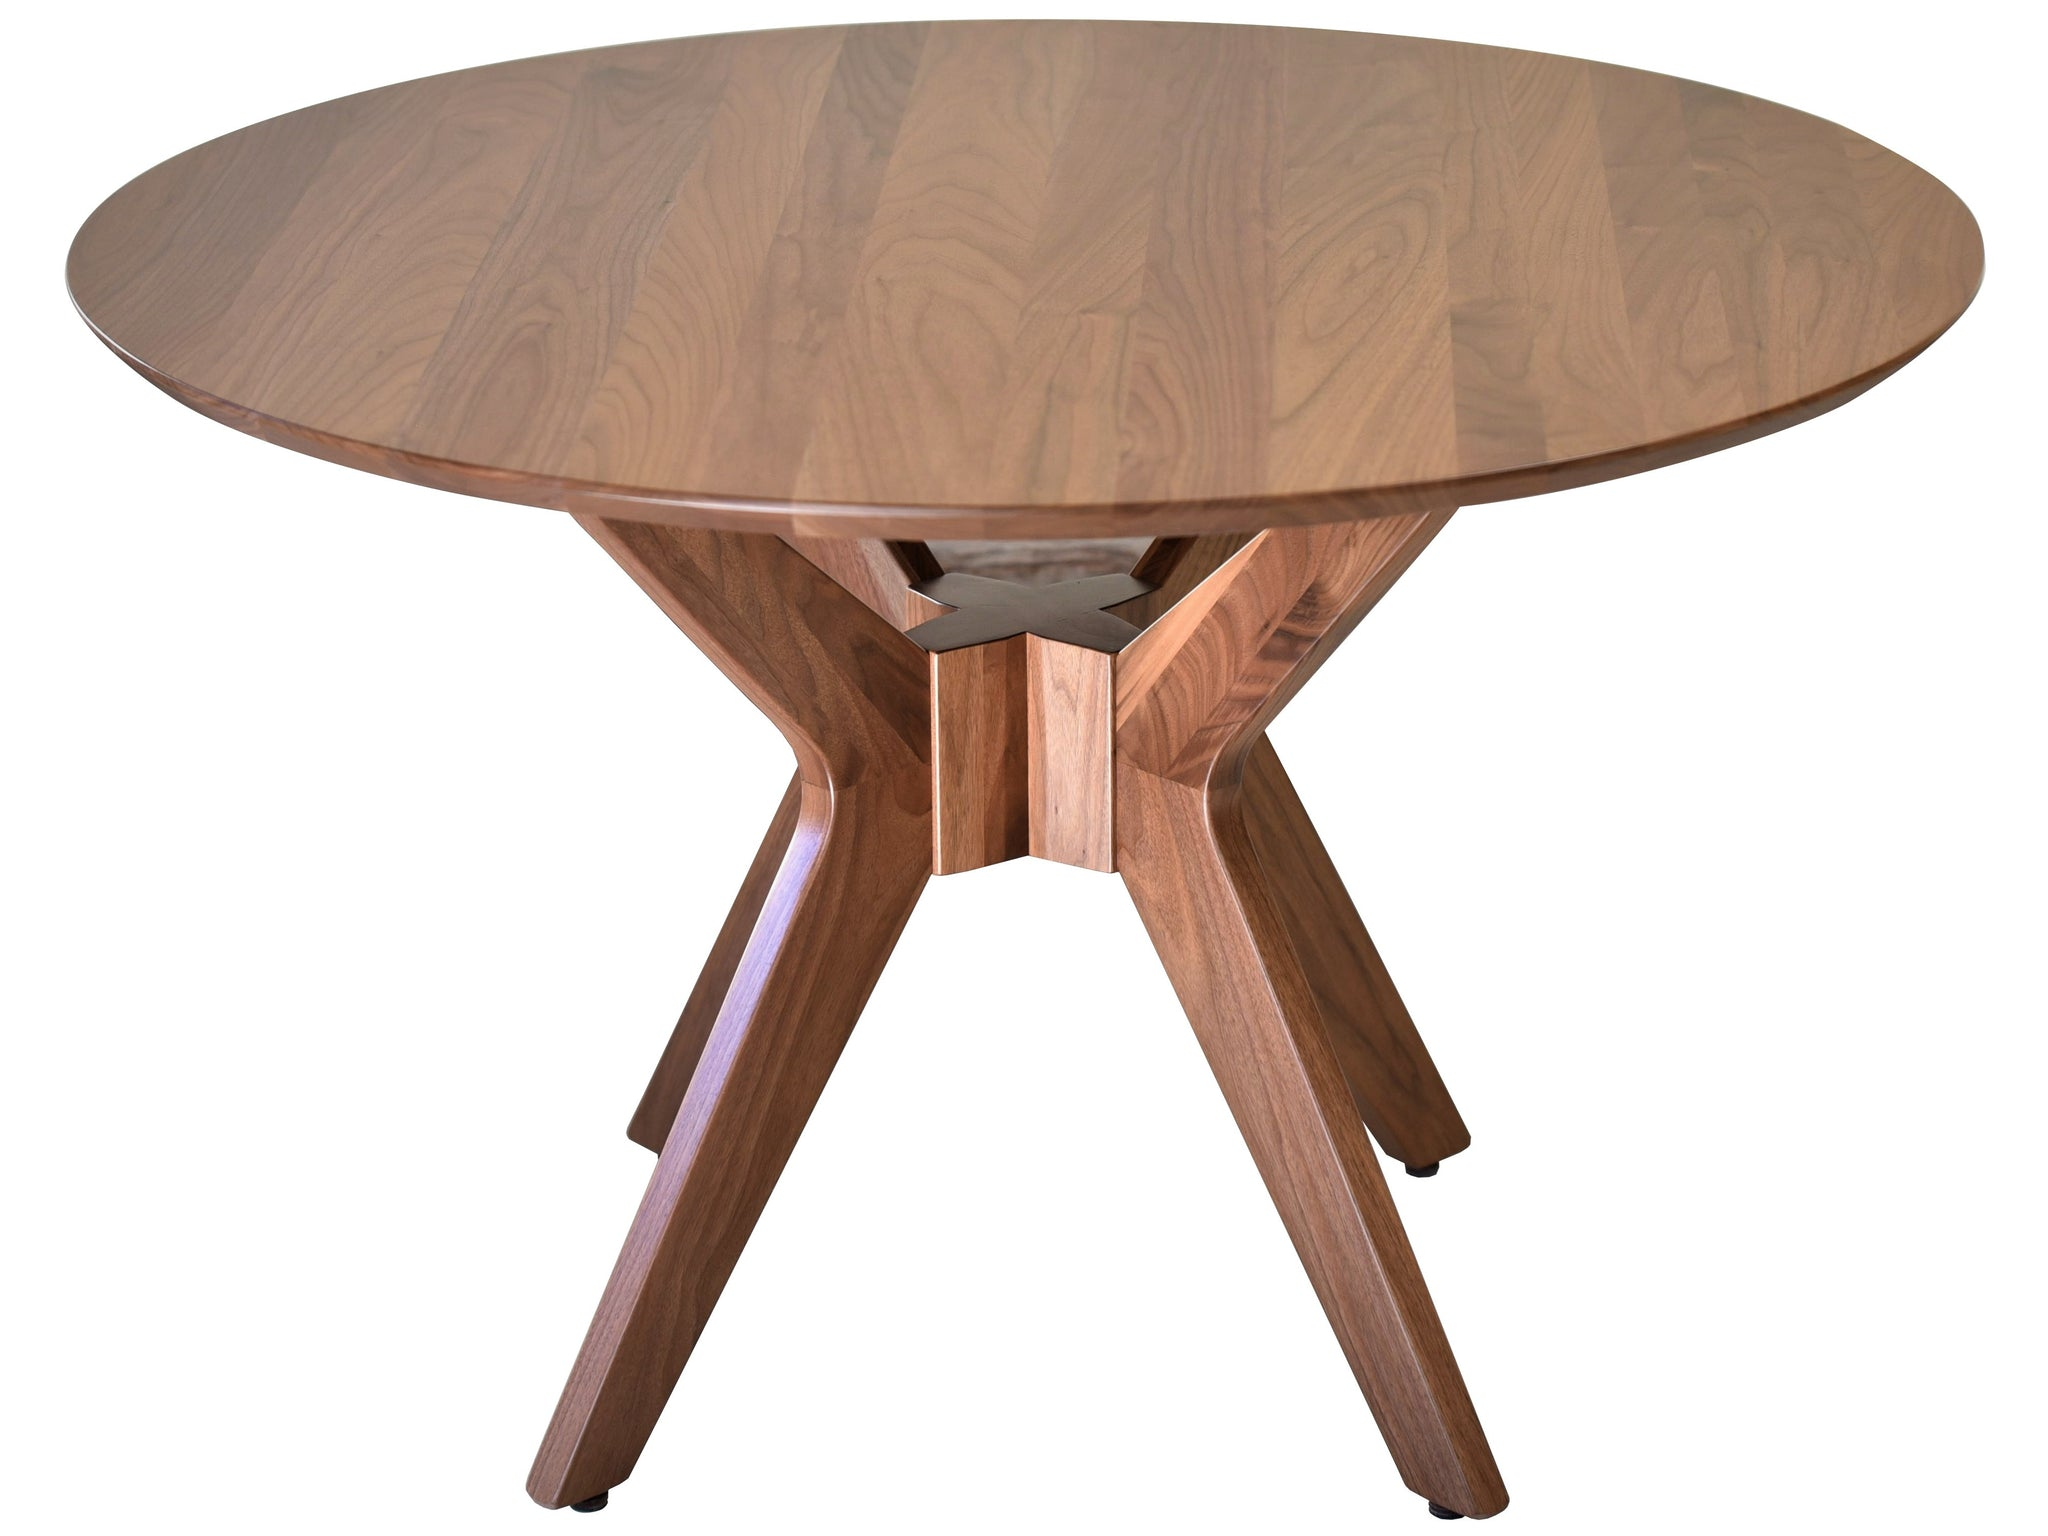 Charmant Mid Century Modern Round Dining Table